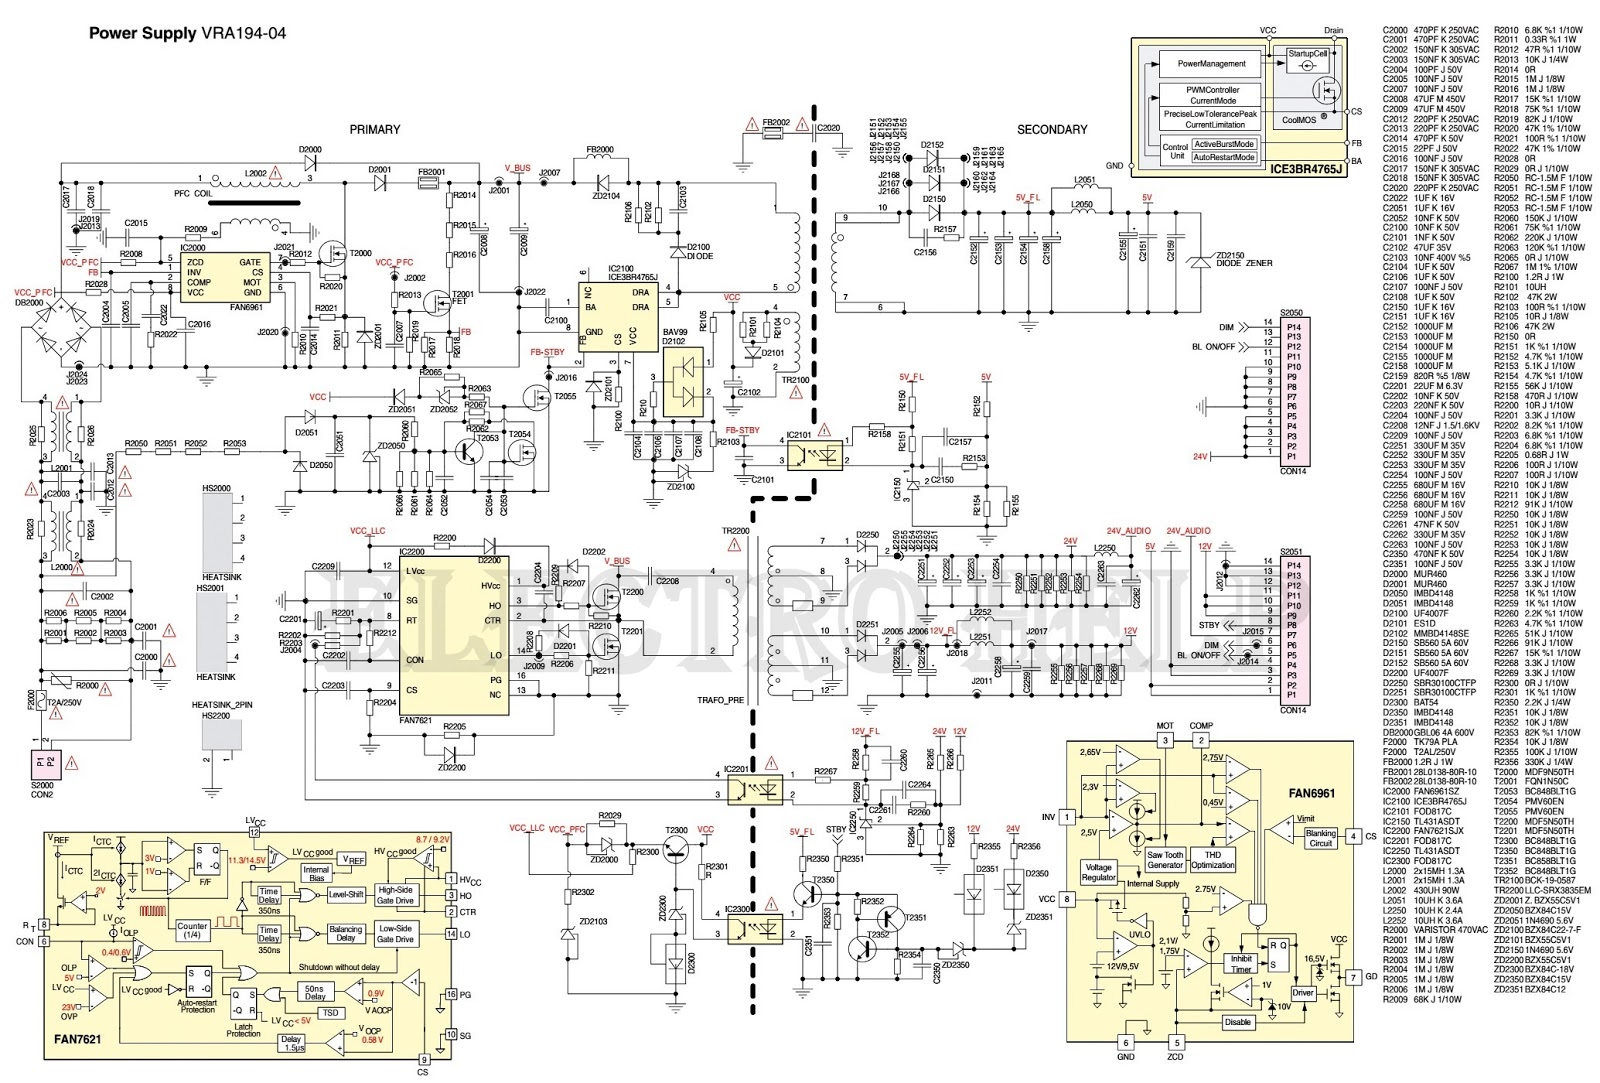 grundig lcd tv power supply vra194 04 smps circuit diagram electro rh electronicshelponline blogspot com lg lcd tv circuit diagram toshiba lcd tv circuit diagram